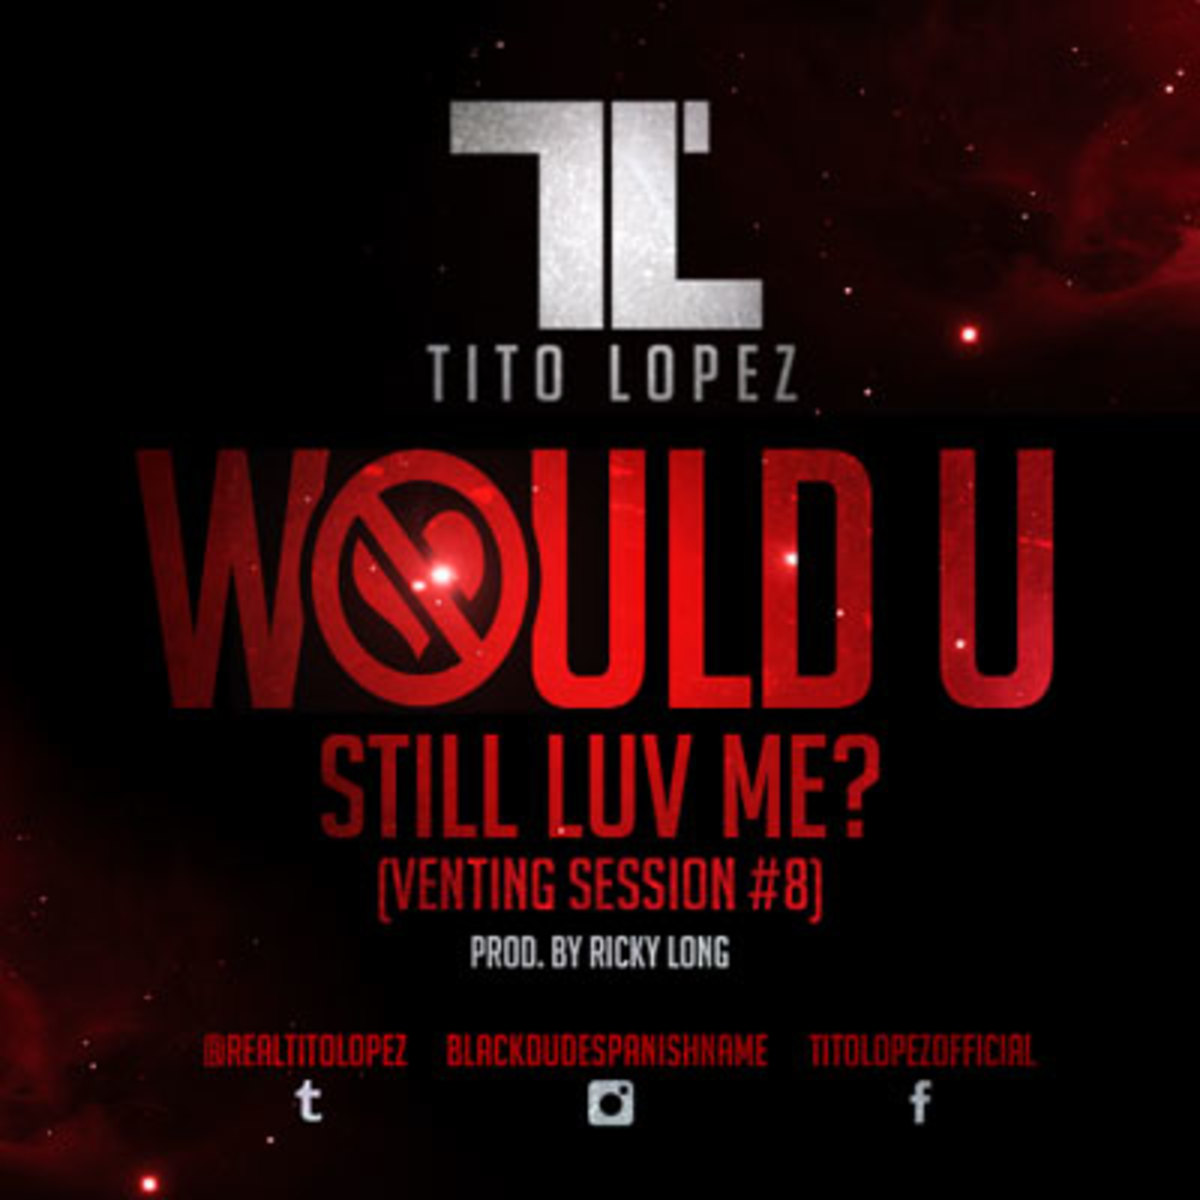 titolopez-wouldu.jpg